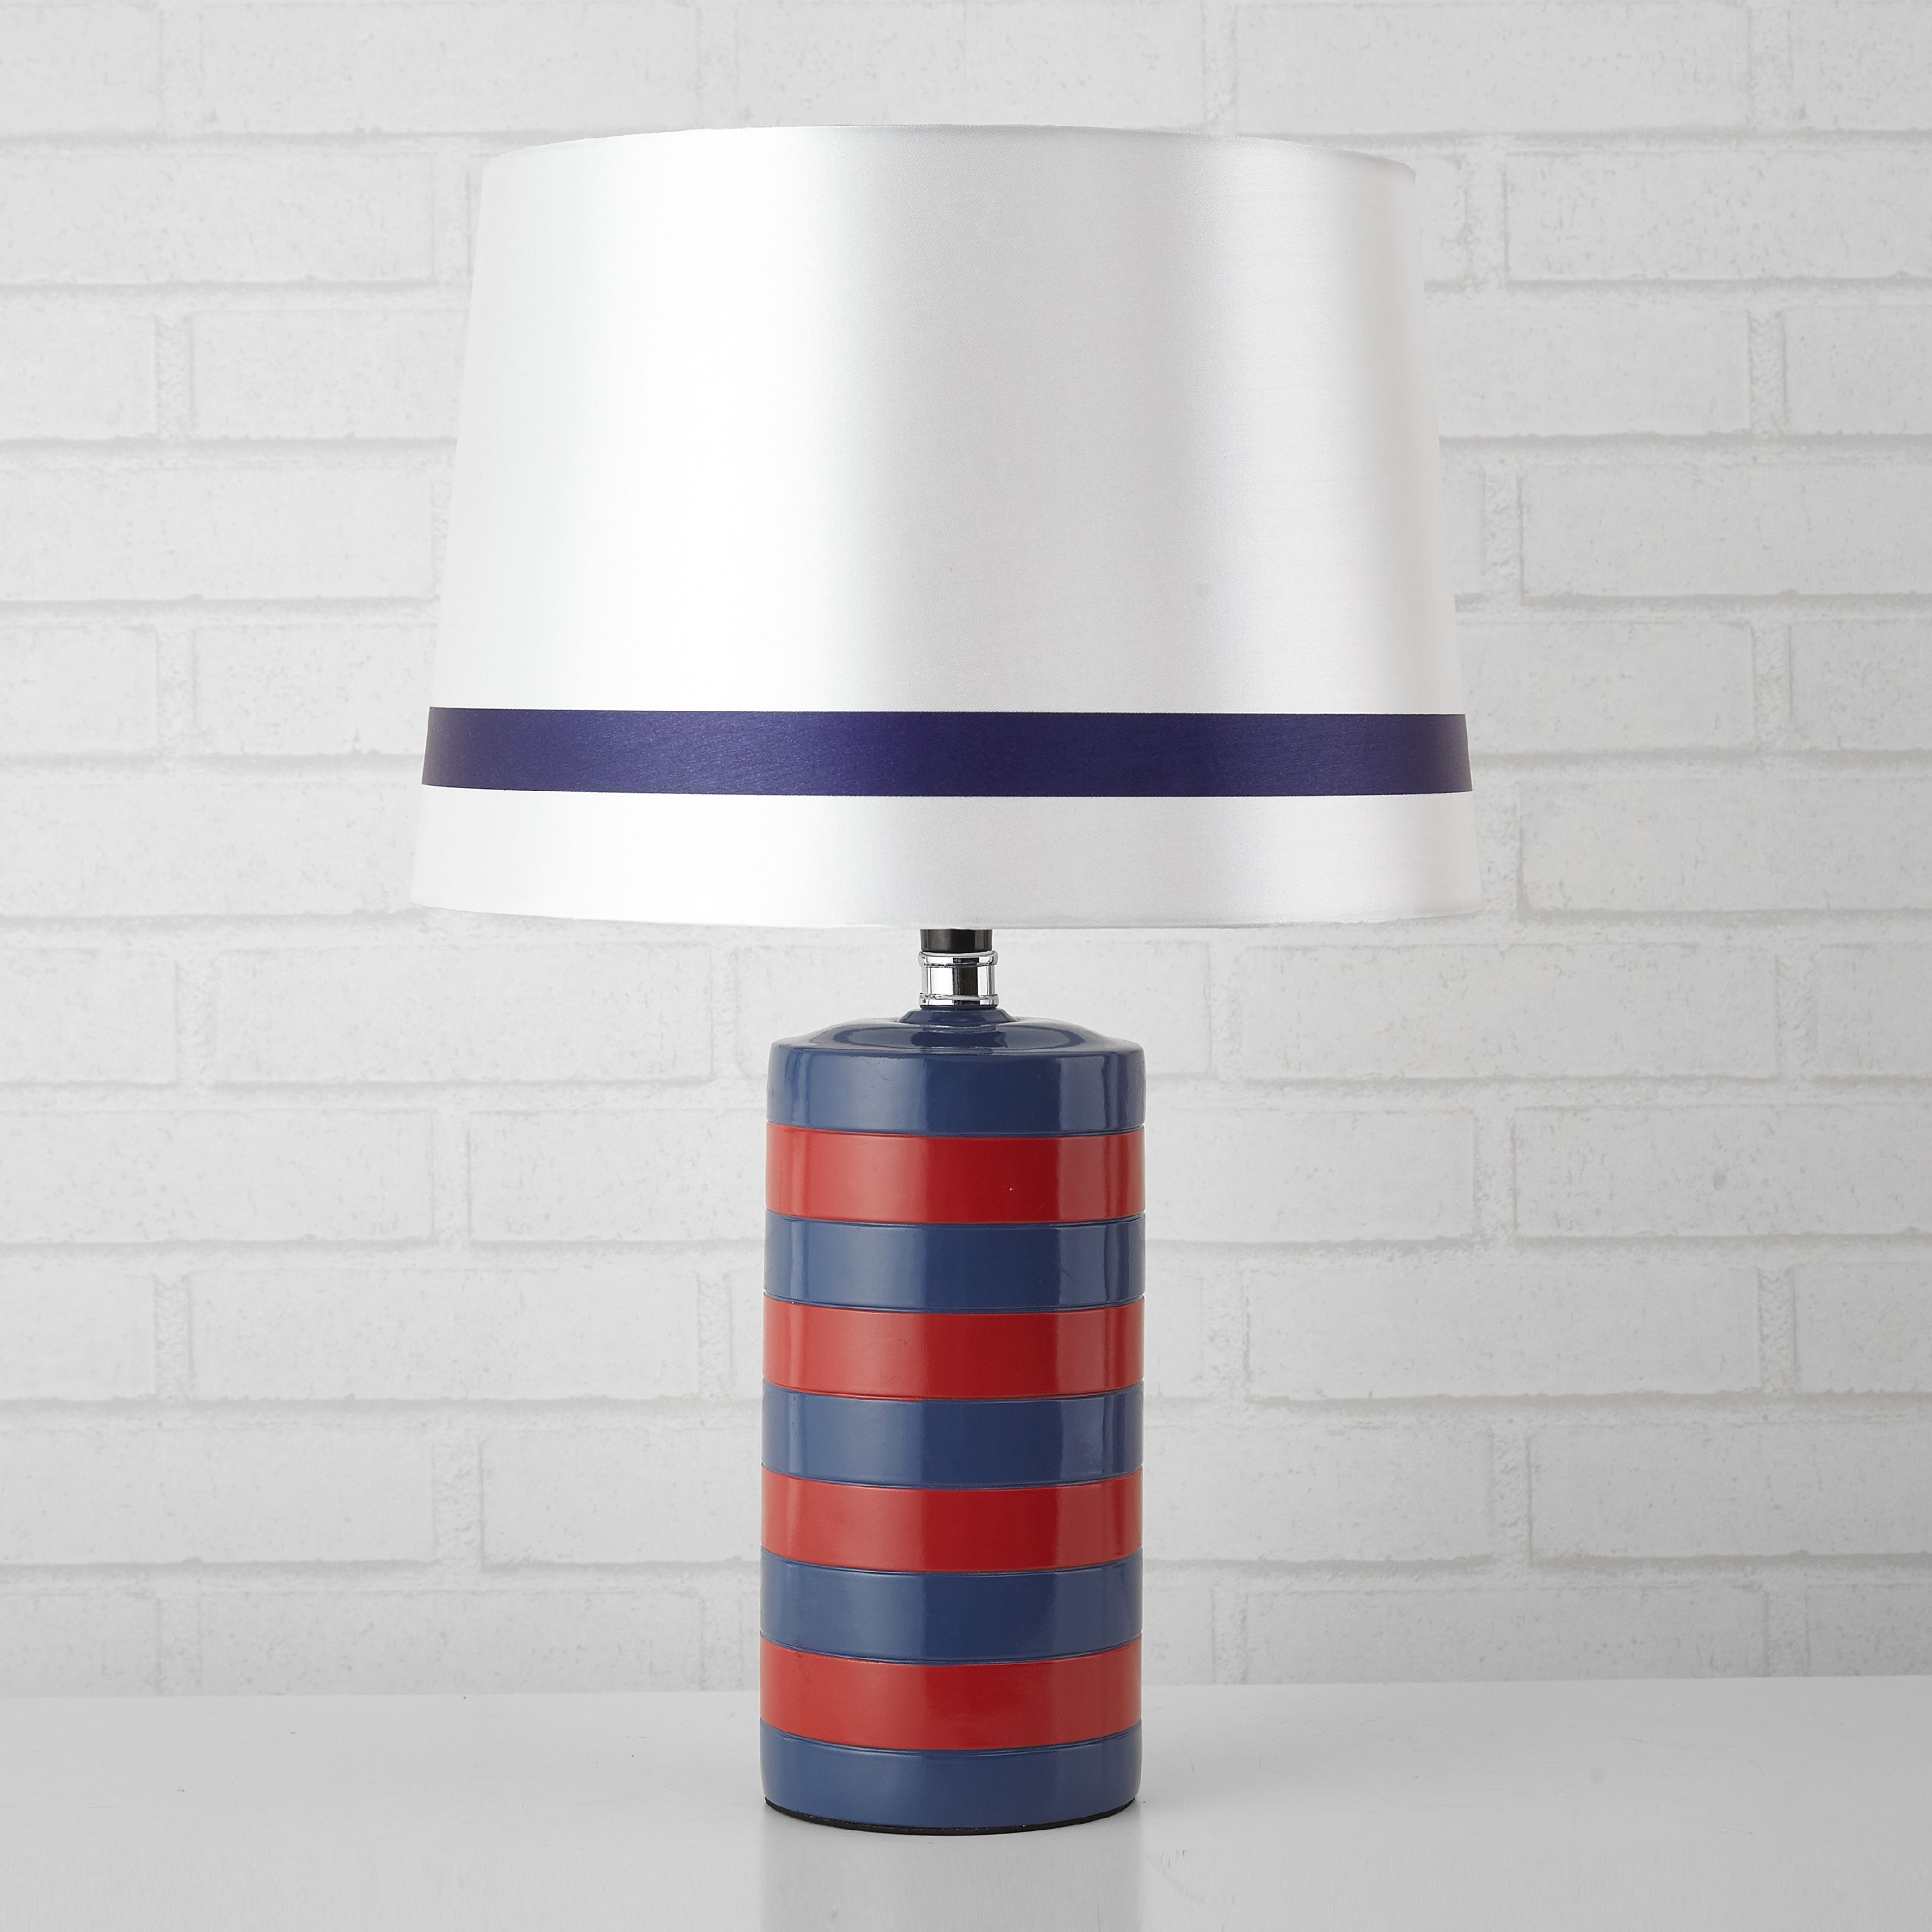 Mainstays Kids Navy Lamp, Red Rugby Stripe Cylinder Lamp, Multiple Colors